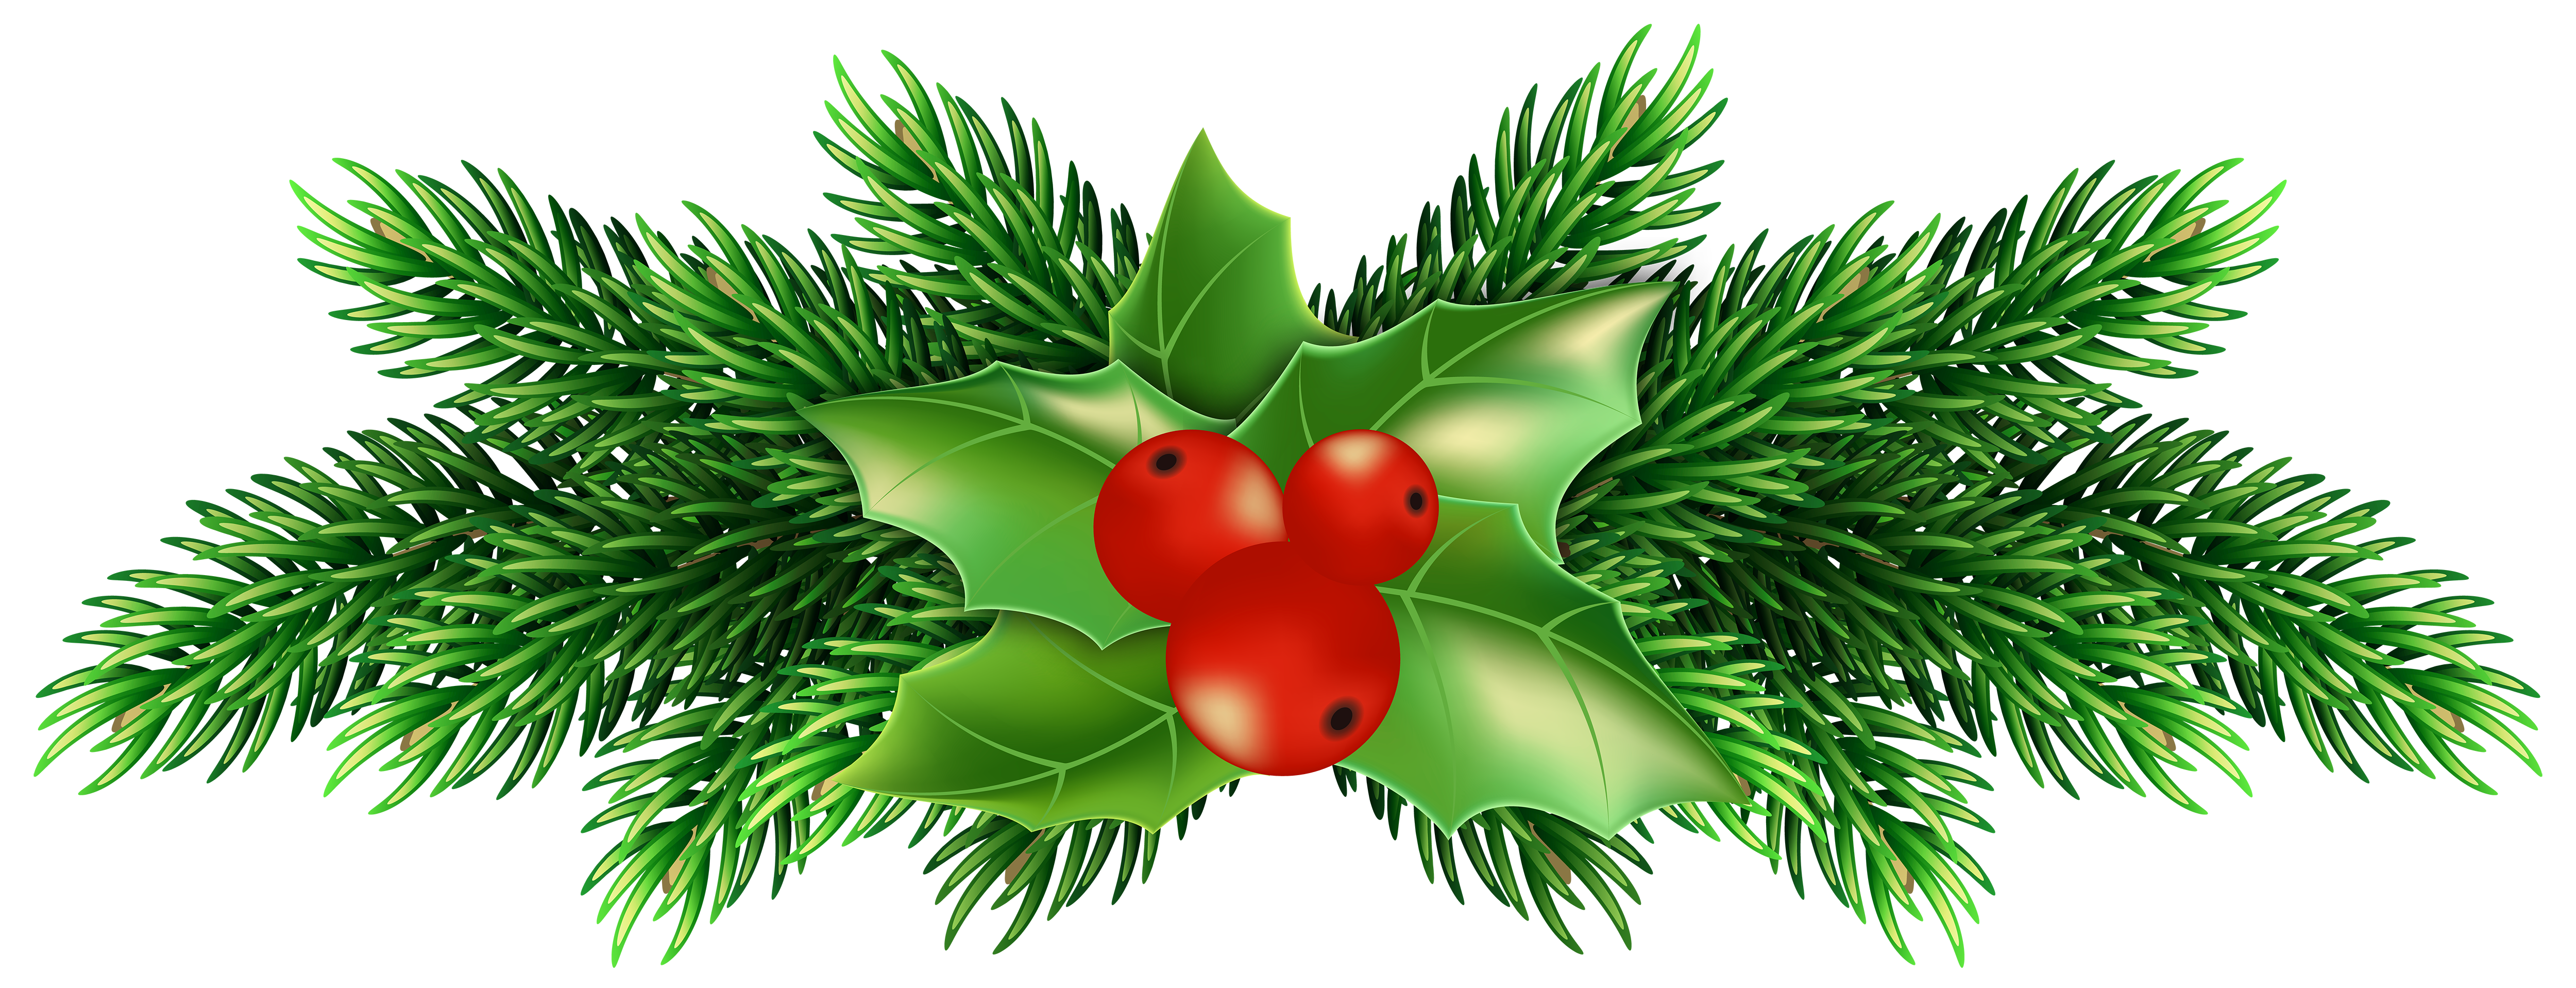 Free Christmas Holly Clipart.